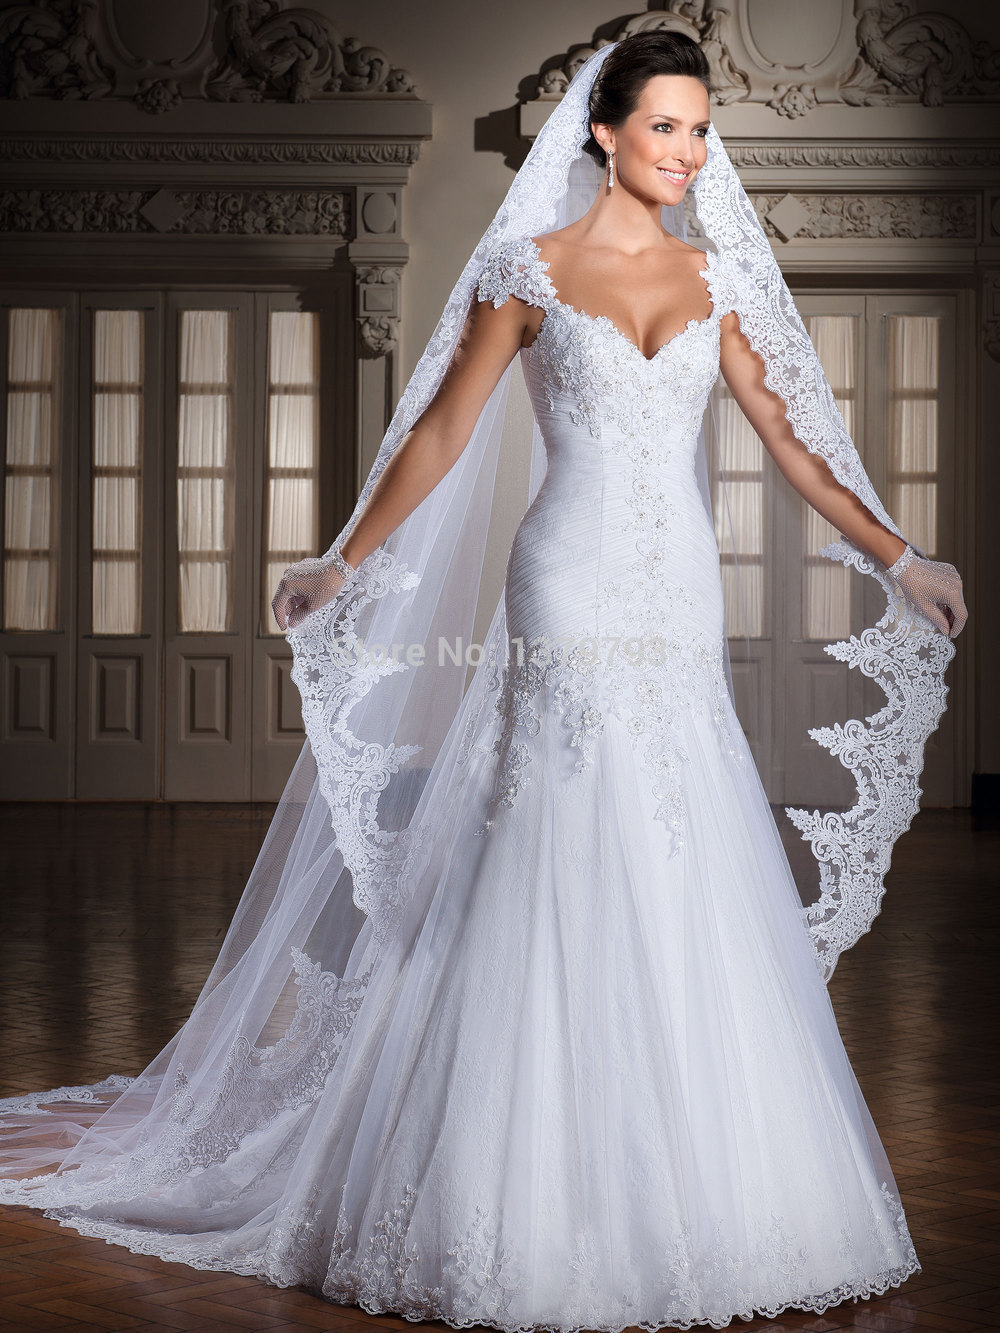 Designer Vintage Wedding Dresses